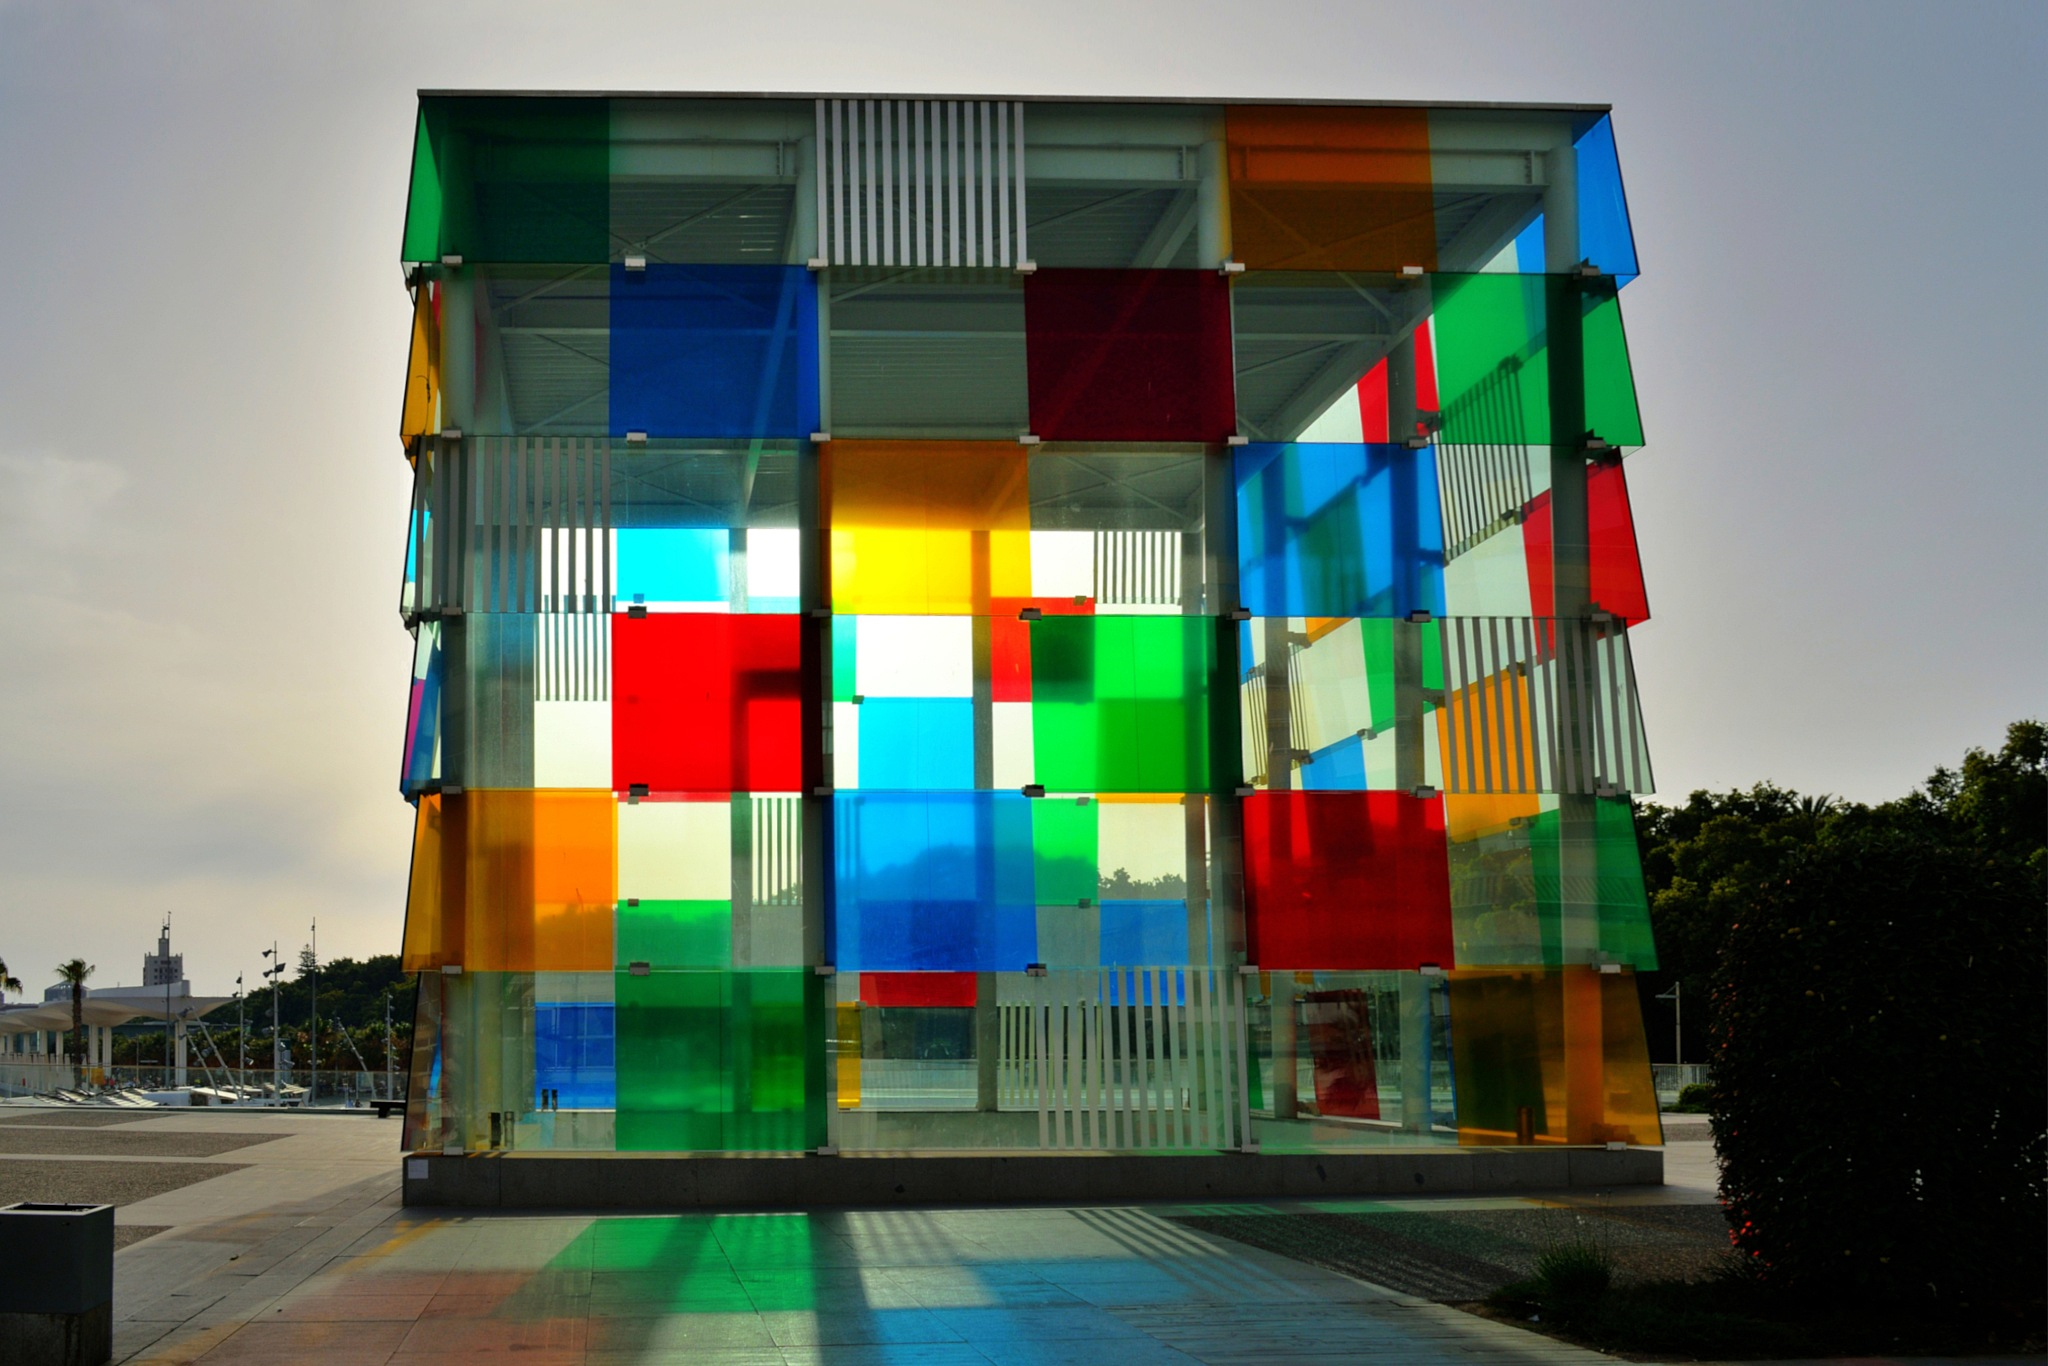 Pompidou Centre by Will Compton